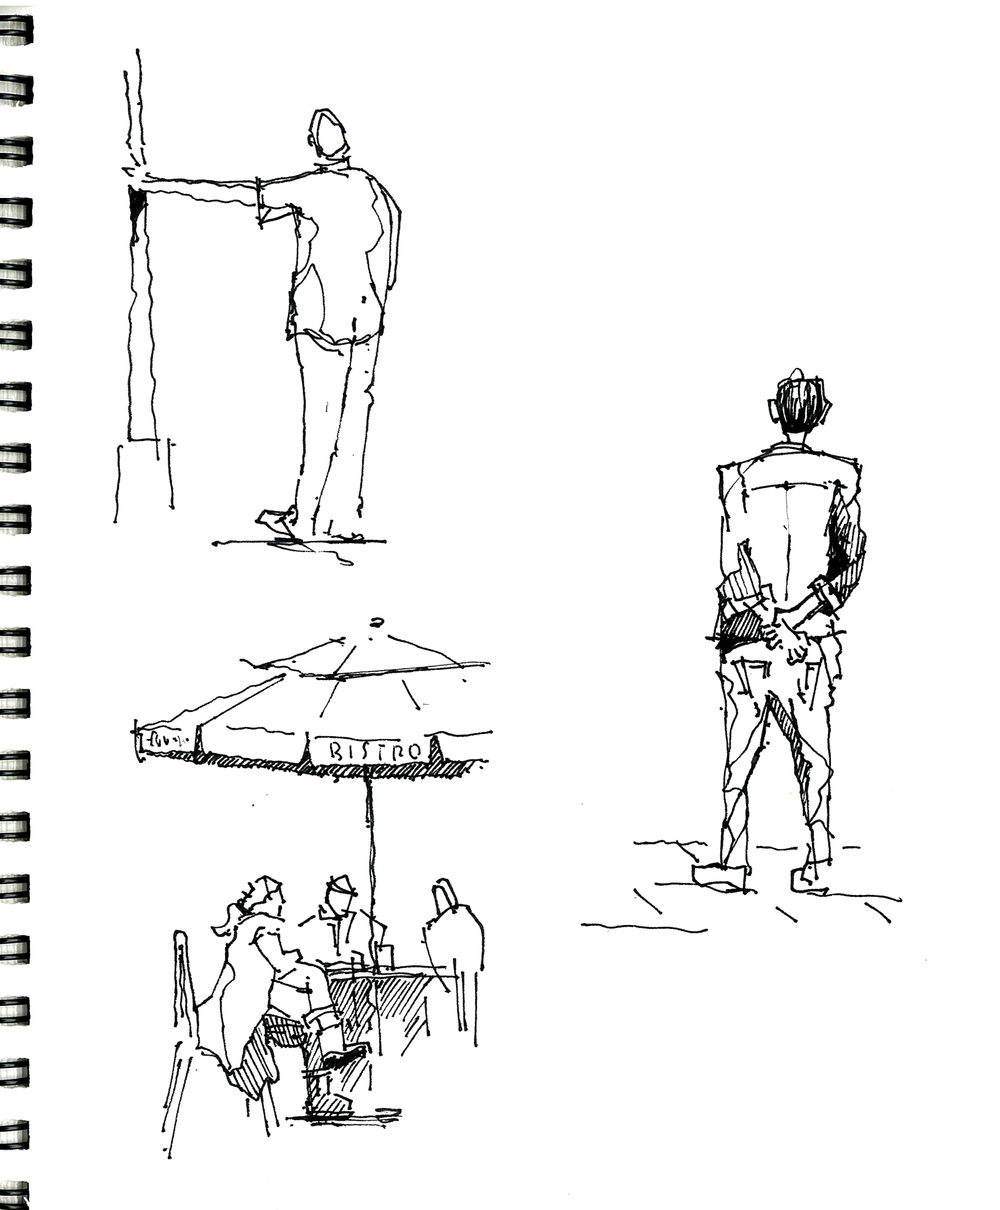 sketch-people1.jpg